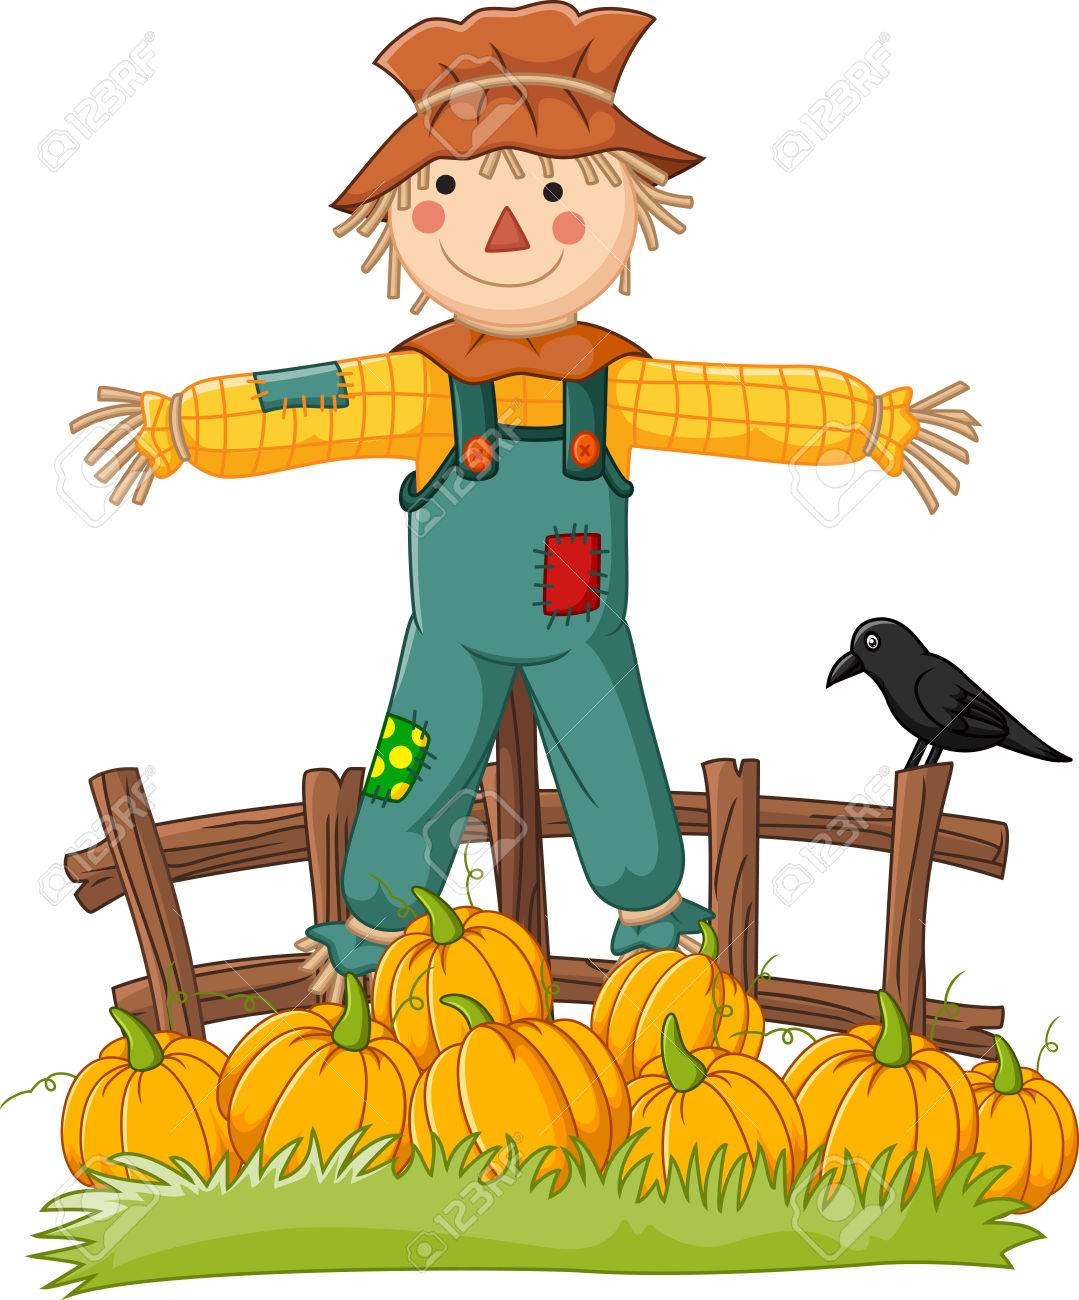 cartoon scarecrow character royalty free cliparts vectors and